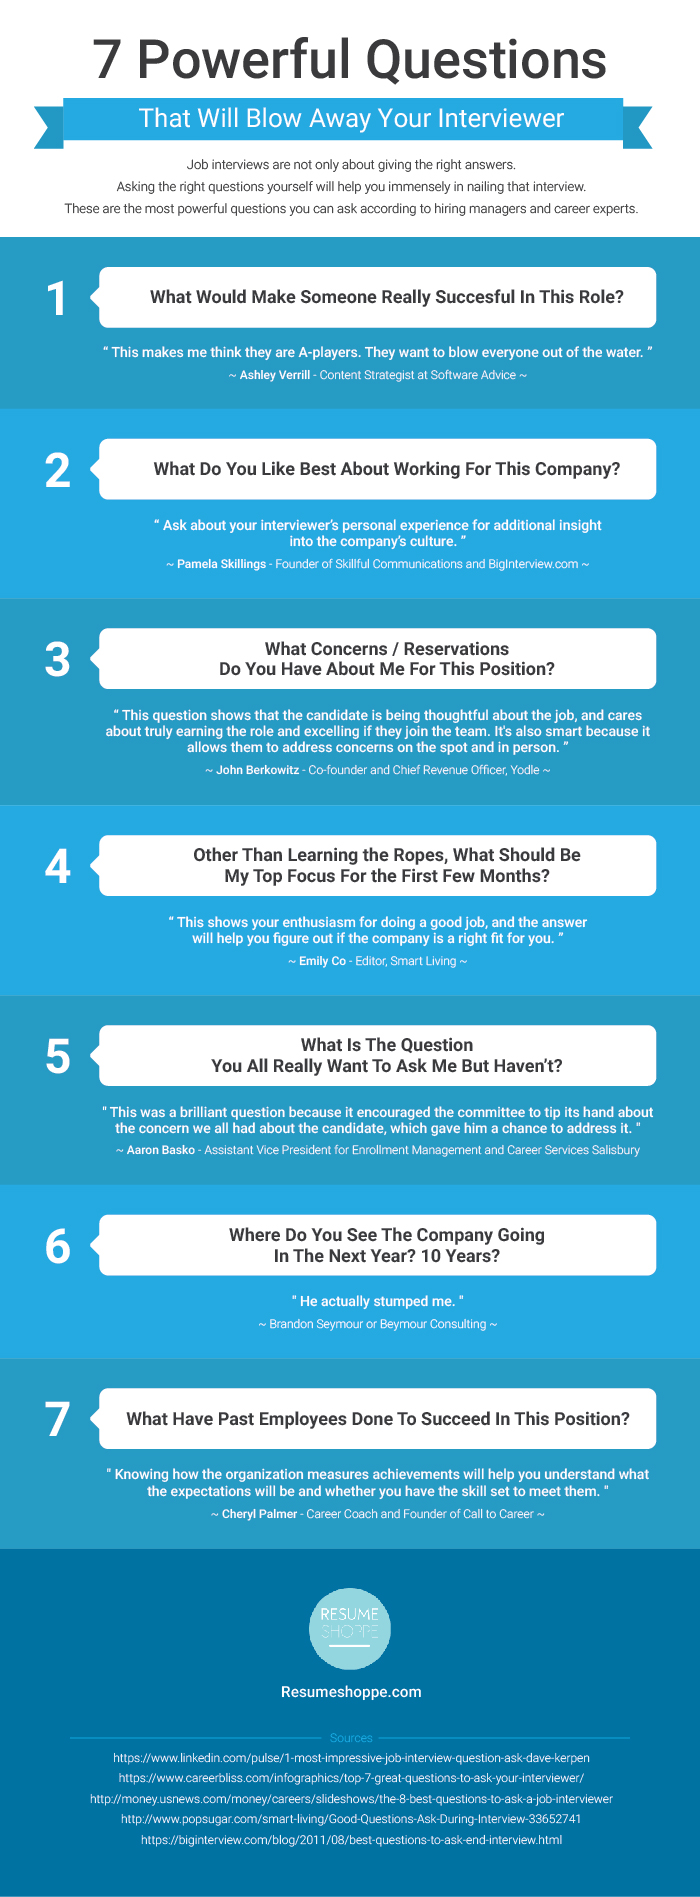 7 Powerful Questions That Will Blow Away Your Interviewer